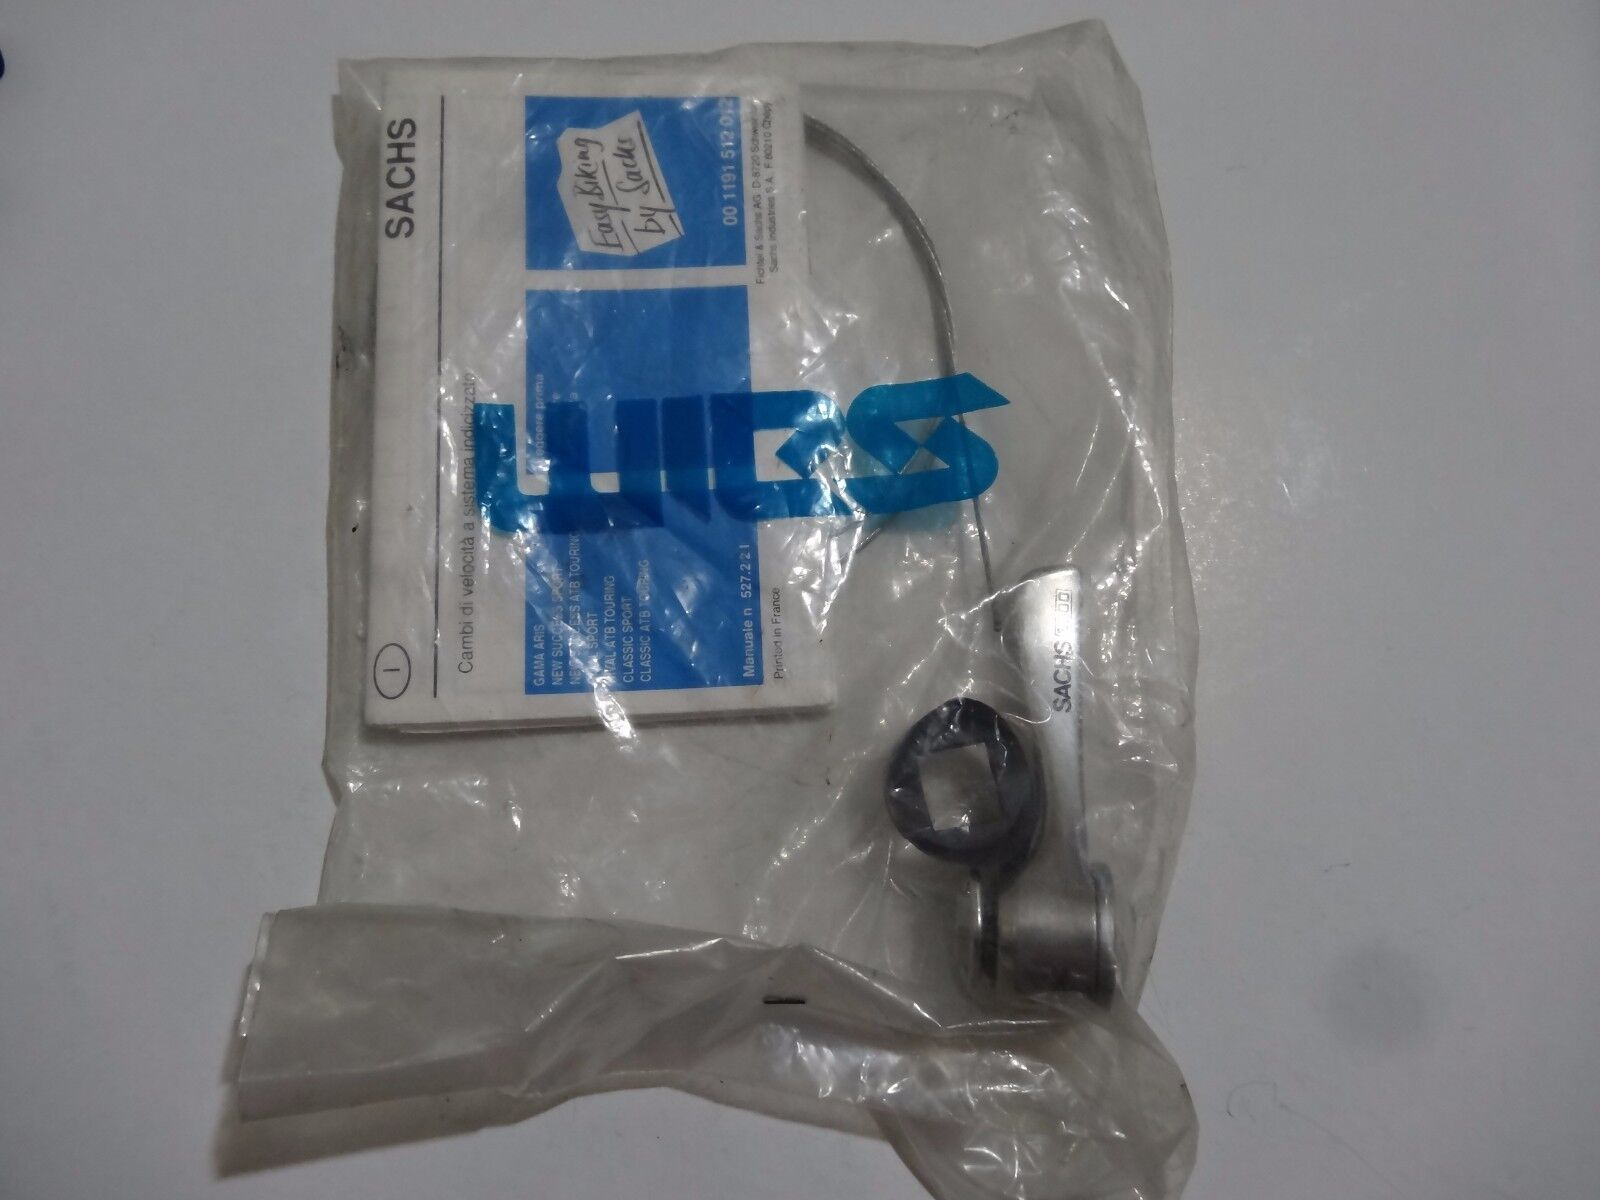 NIB  Sachs 5000 left shifter new in original box